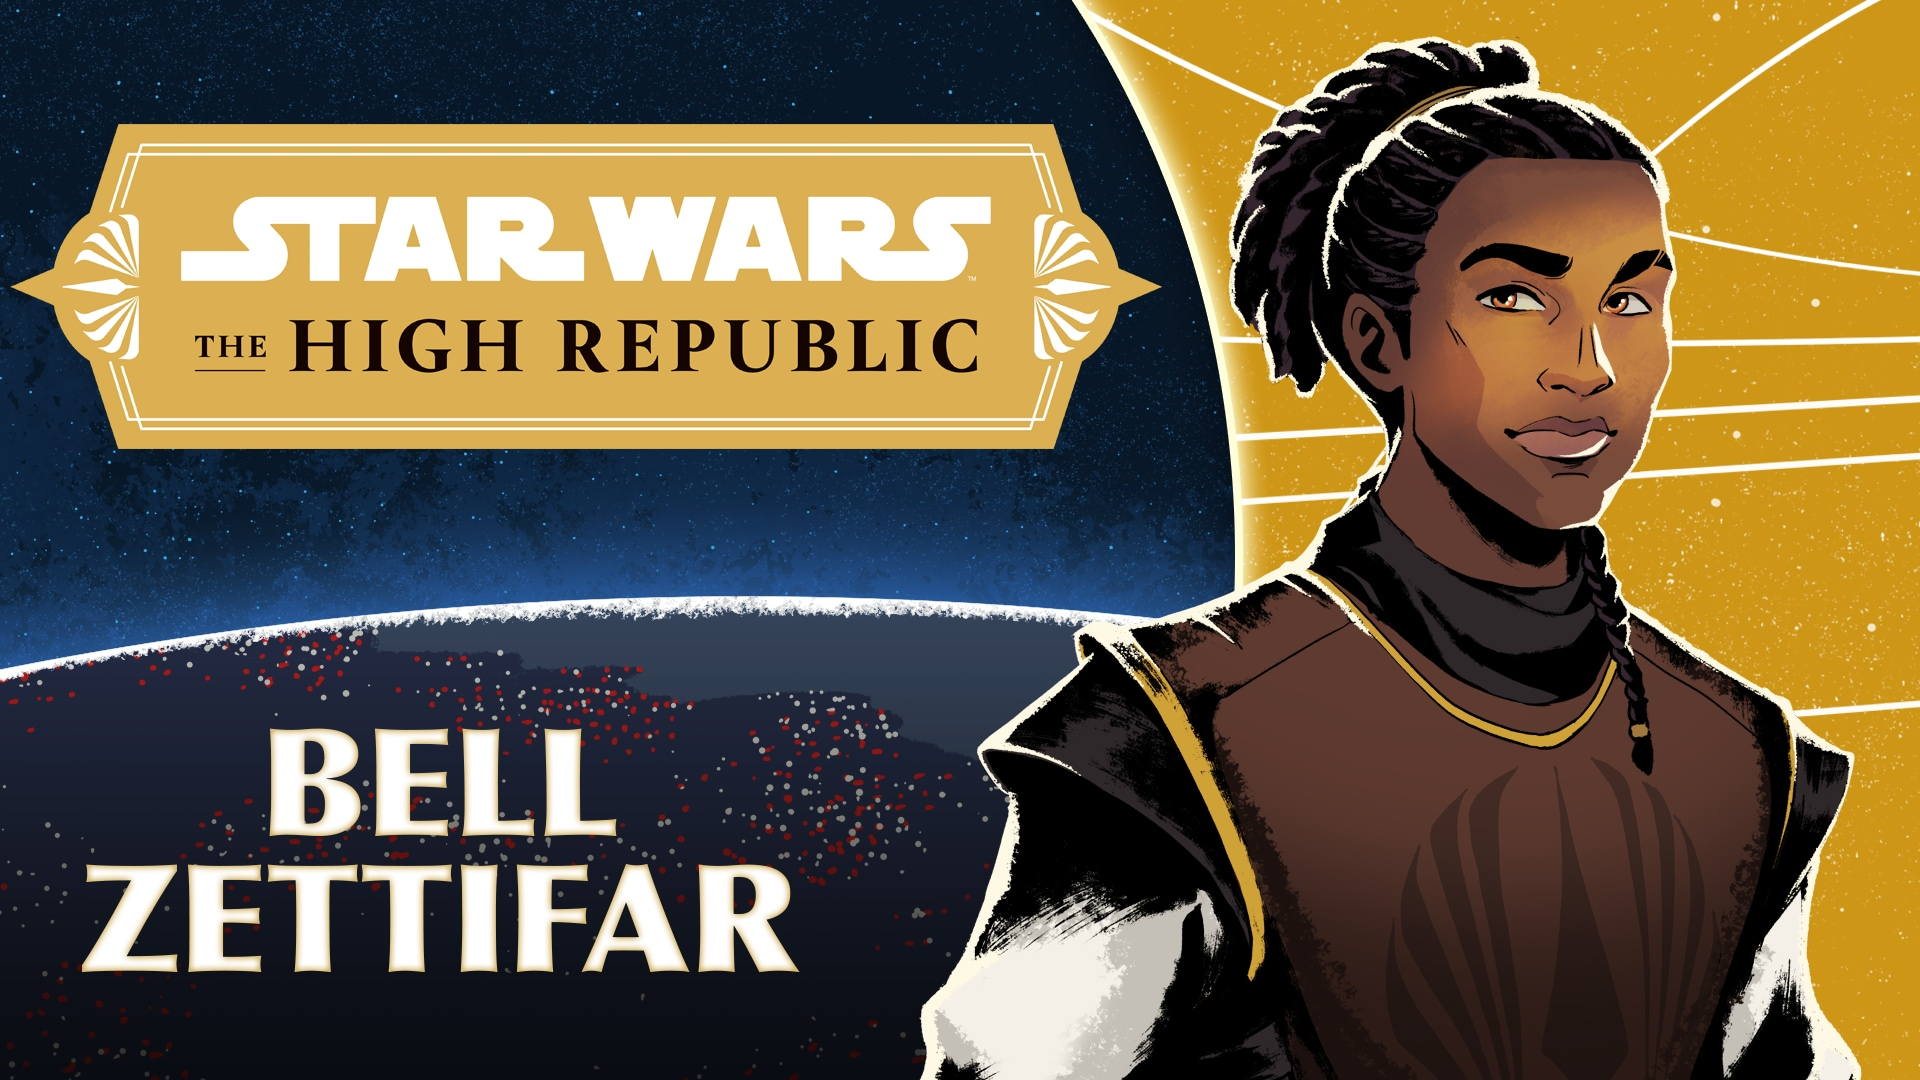 Jedi Padawan Bell Zettifar | Characters of Star Wars: the High Republic